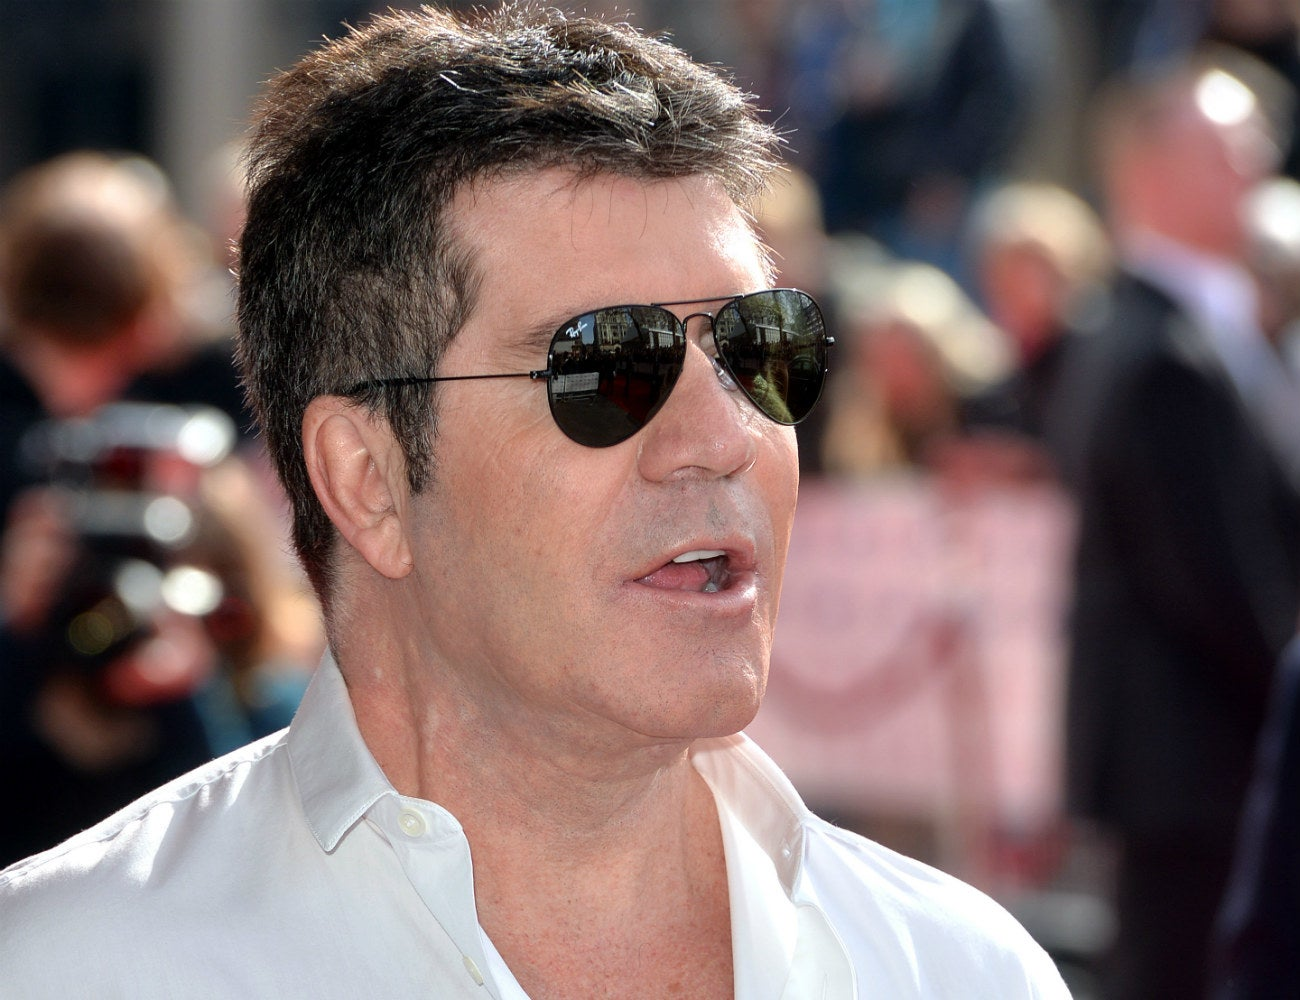 Simon Cowell 'rushed to hospital' - reports